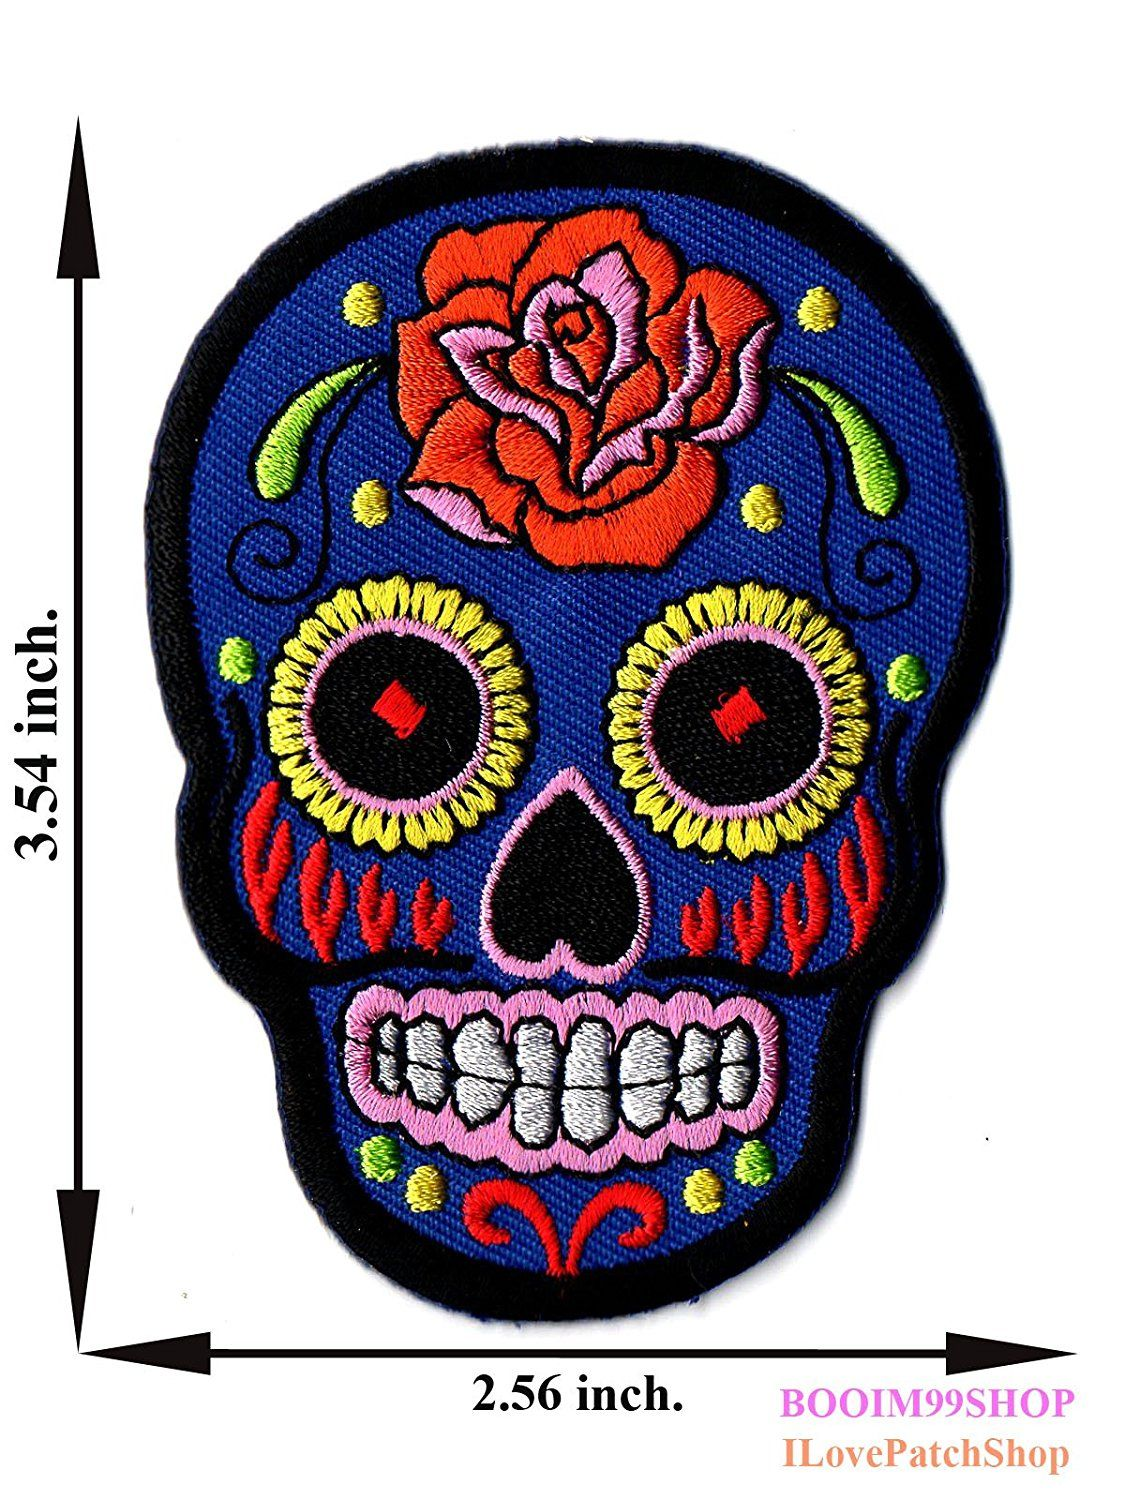 'Blue Rose Skull Sugar Sunny Buick Patch' Iron on Patch 3